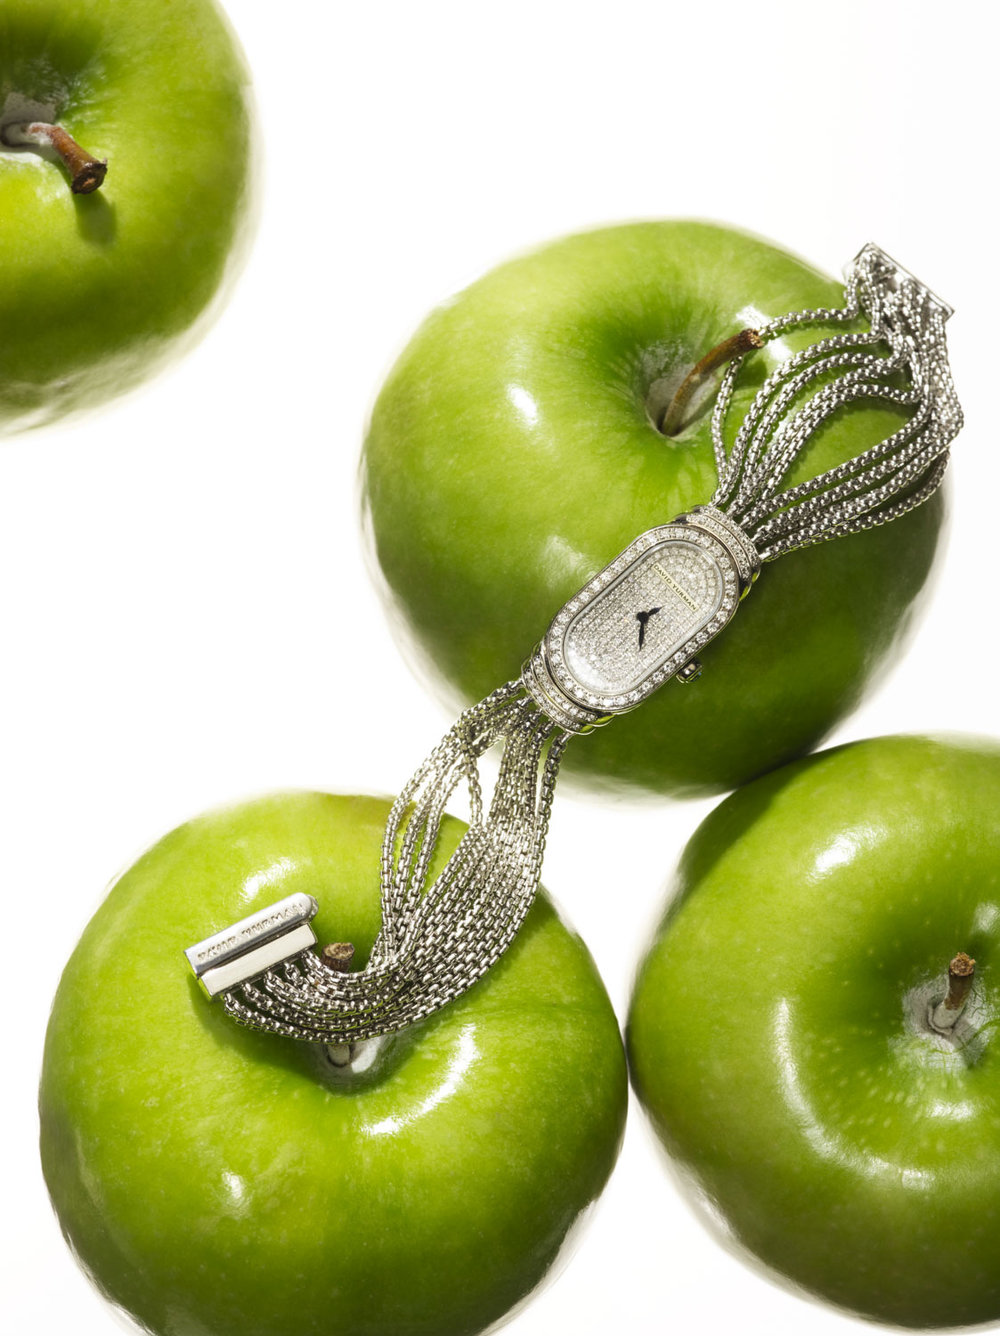 jewelry_watch_apples_life_new_york_photographer